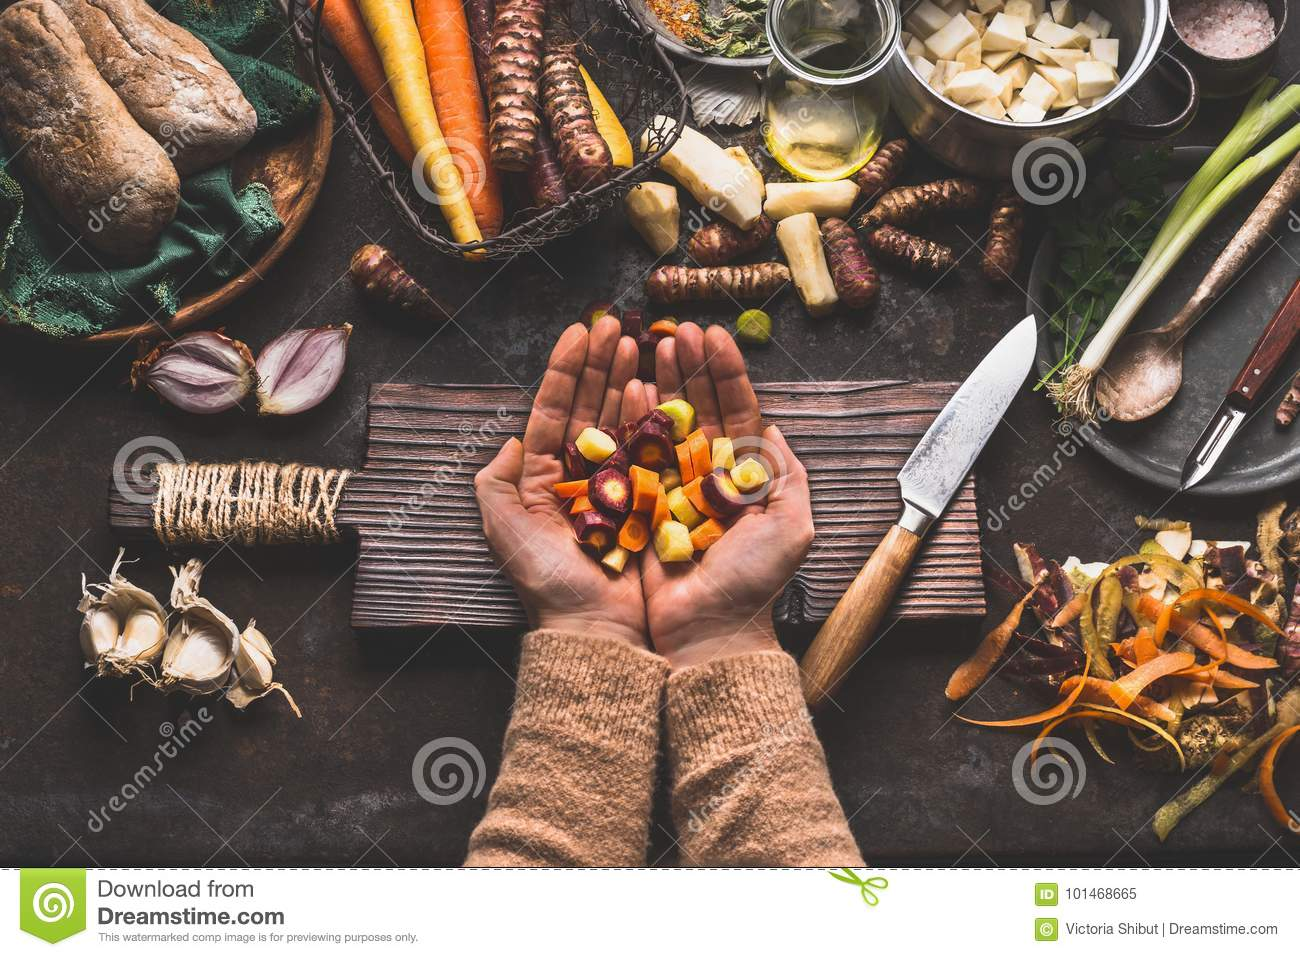 Female woman hands holding diced colorful vegetables on rustic kitchen table with vegetarian cooking ingredients and tools. Health